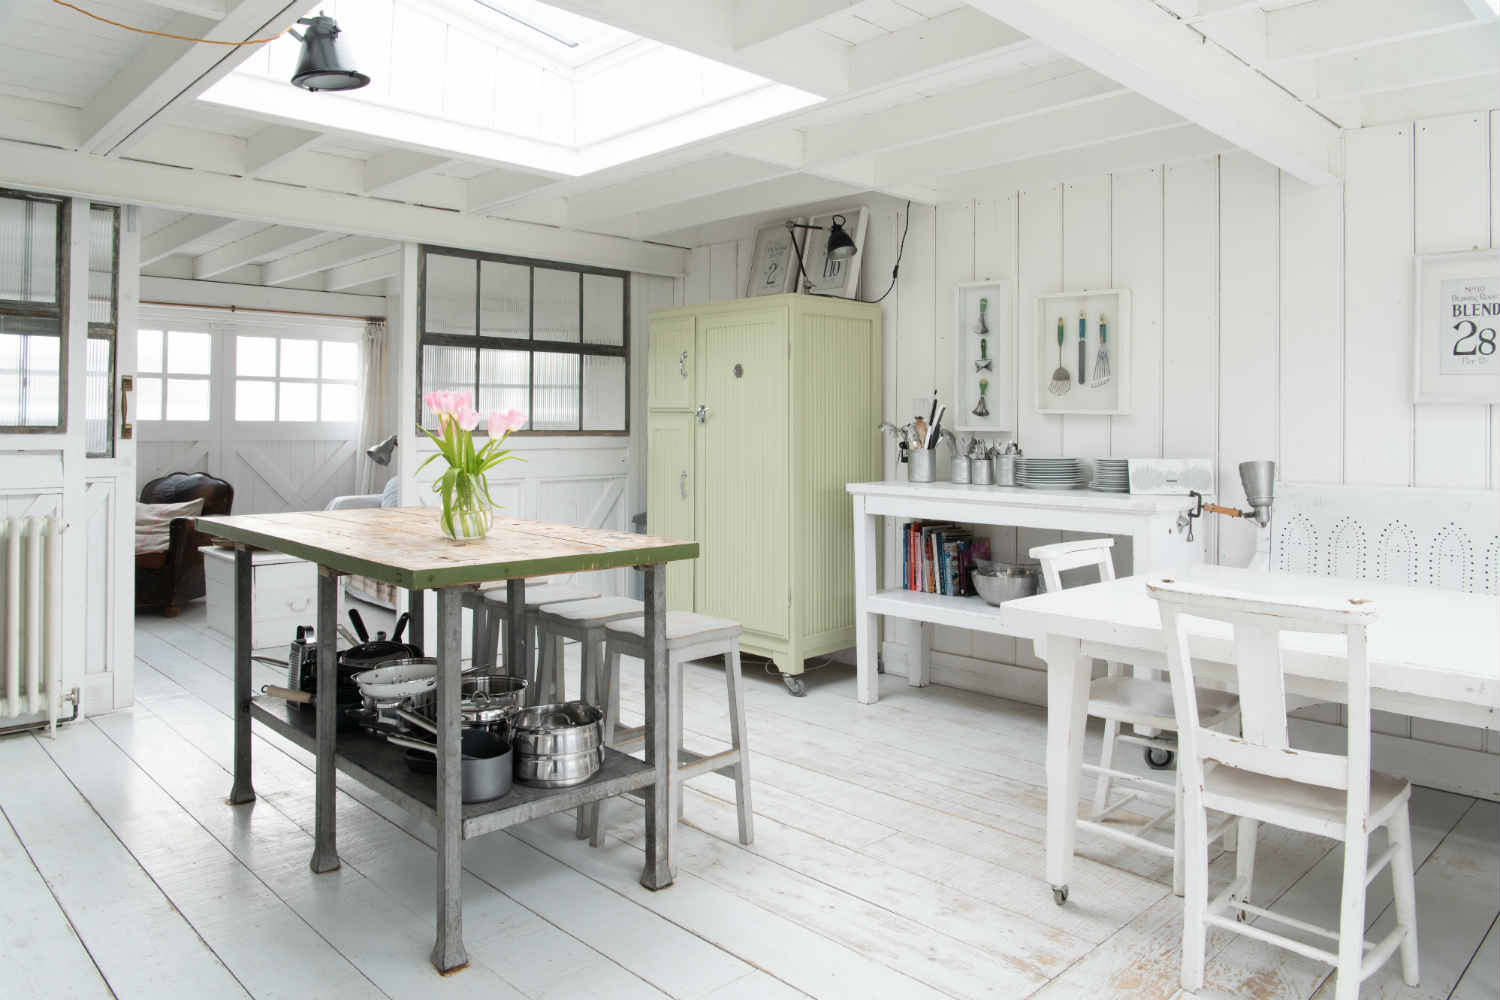 Camber Sands Cottage - kitchen and dining area